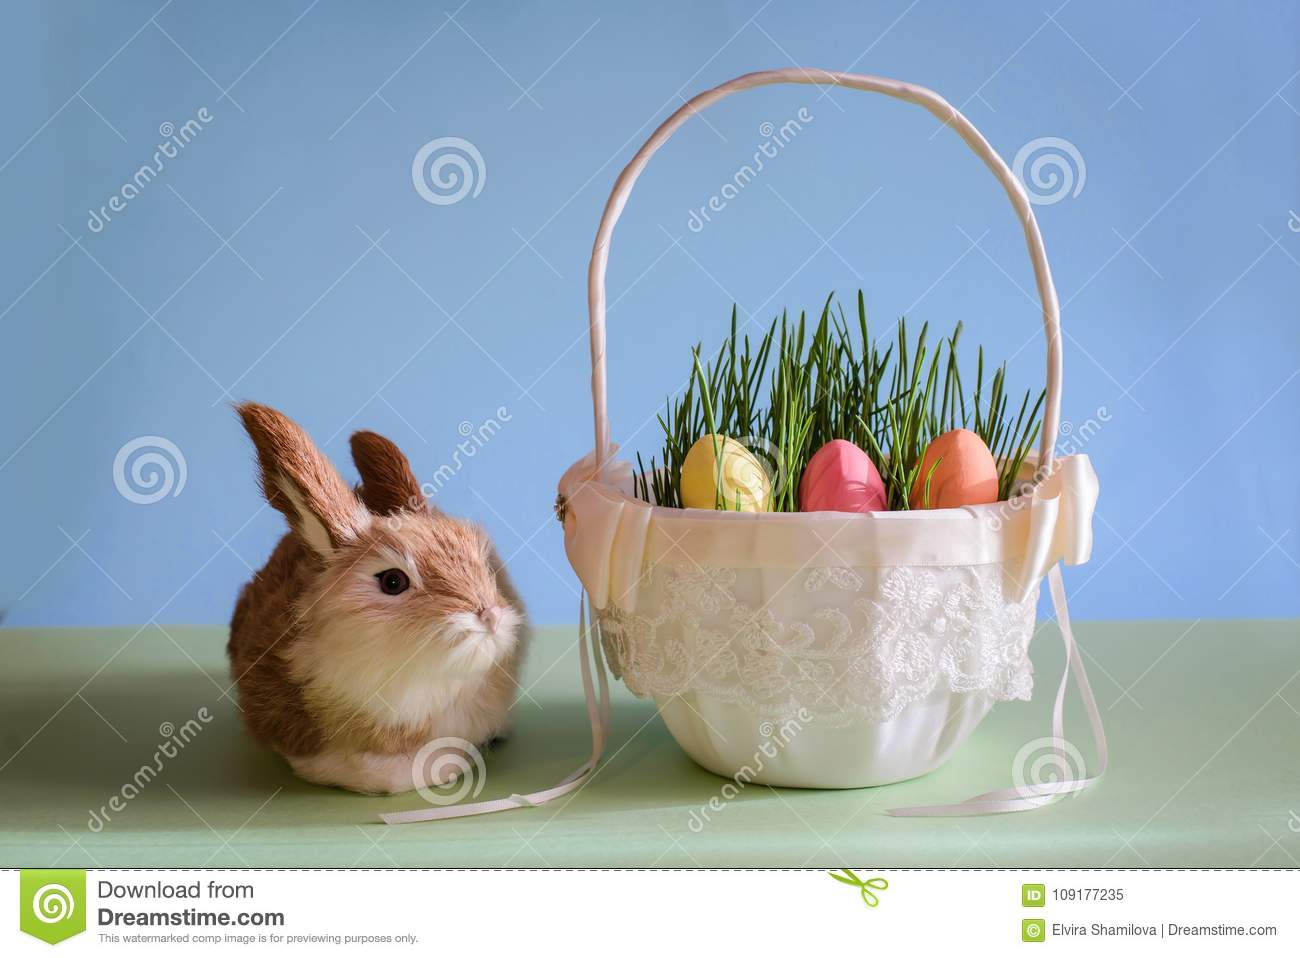 Easter eggs in basket with grass and rabbit